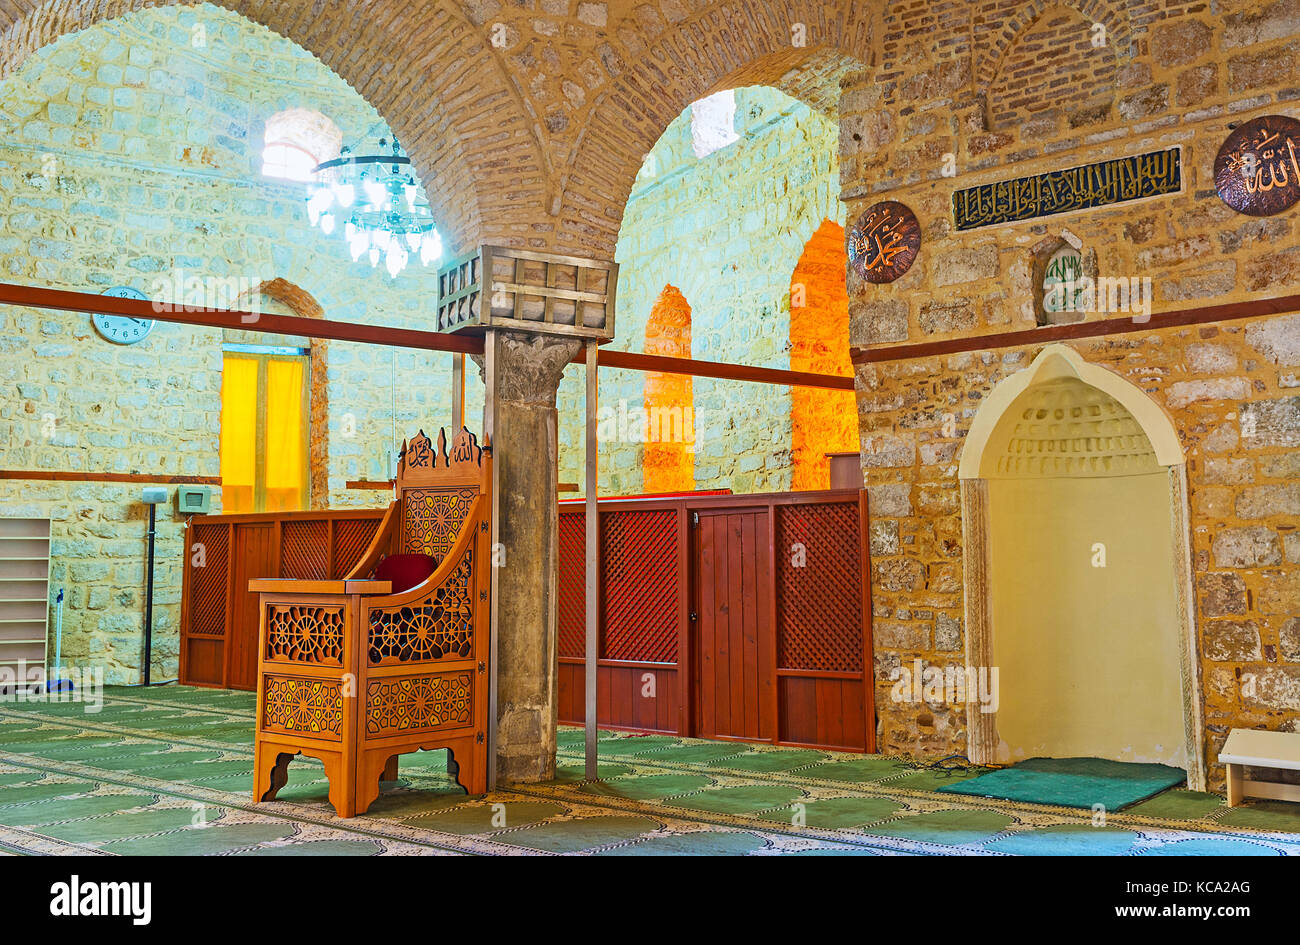 ANTALYA, TURKEY - MAY 12, 2017: The Alaaddin Mosque, also known as Yivliminare or Ulu Cami (Grand Mosque), is decorated - Stock Image